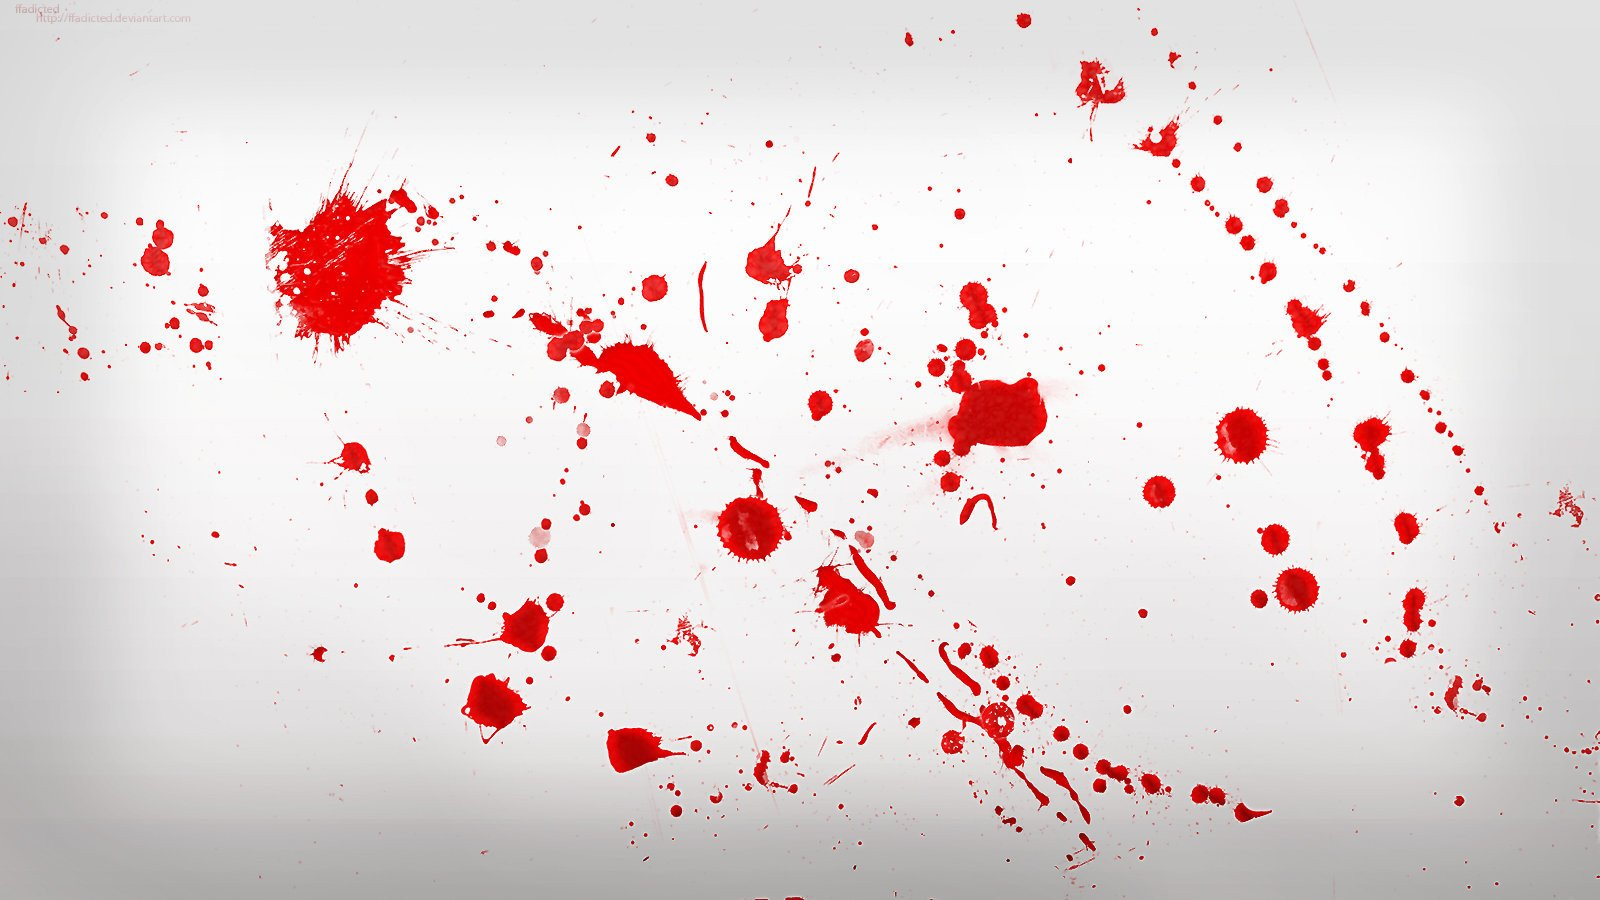 Blood Splatter Powerpoint Templates Real Blood Splatter Background & Becuo Hq